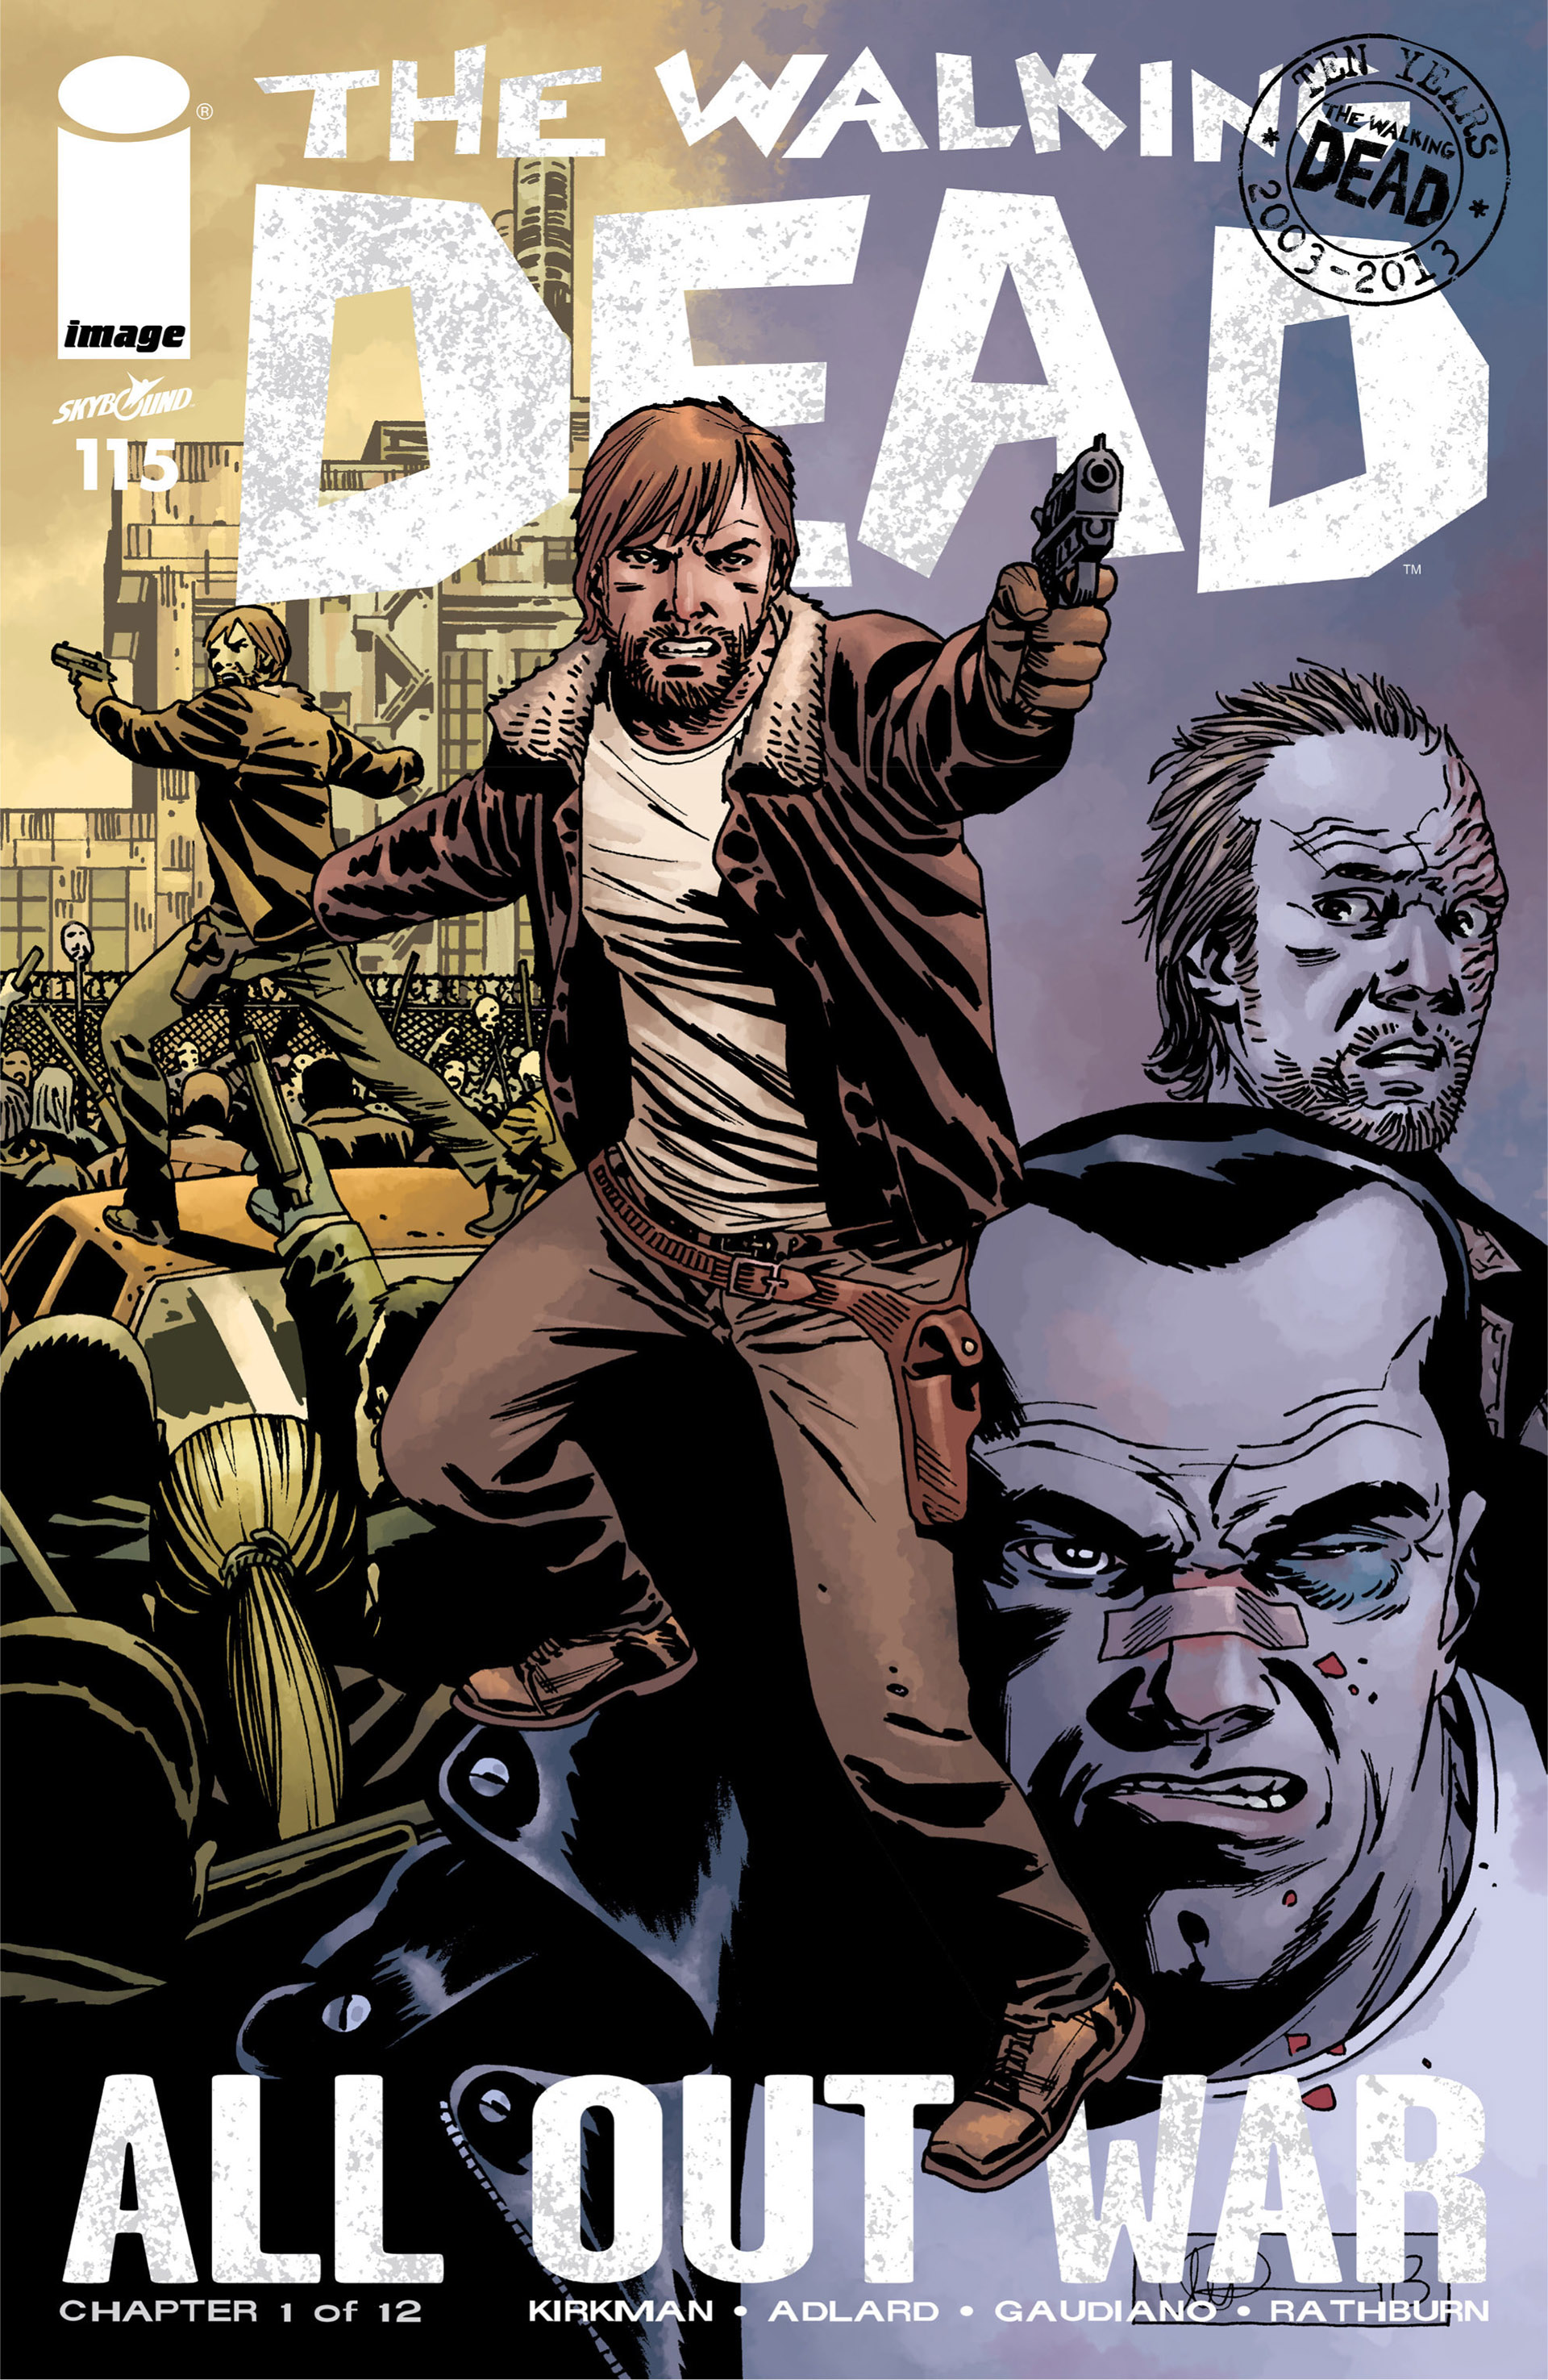 The Walking Dead 115 Page 1